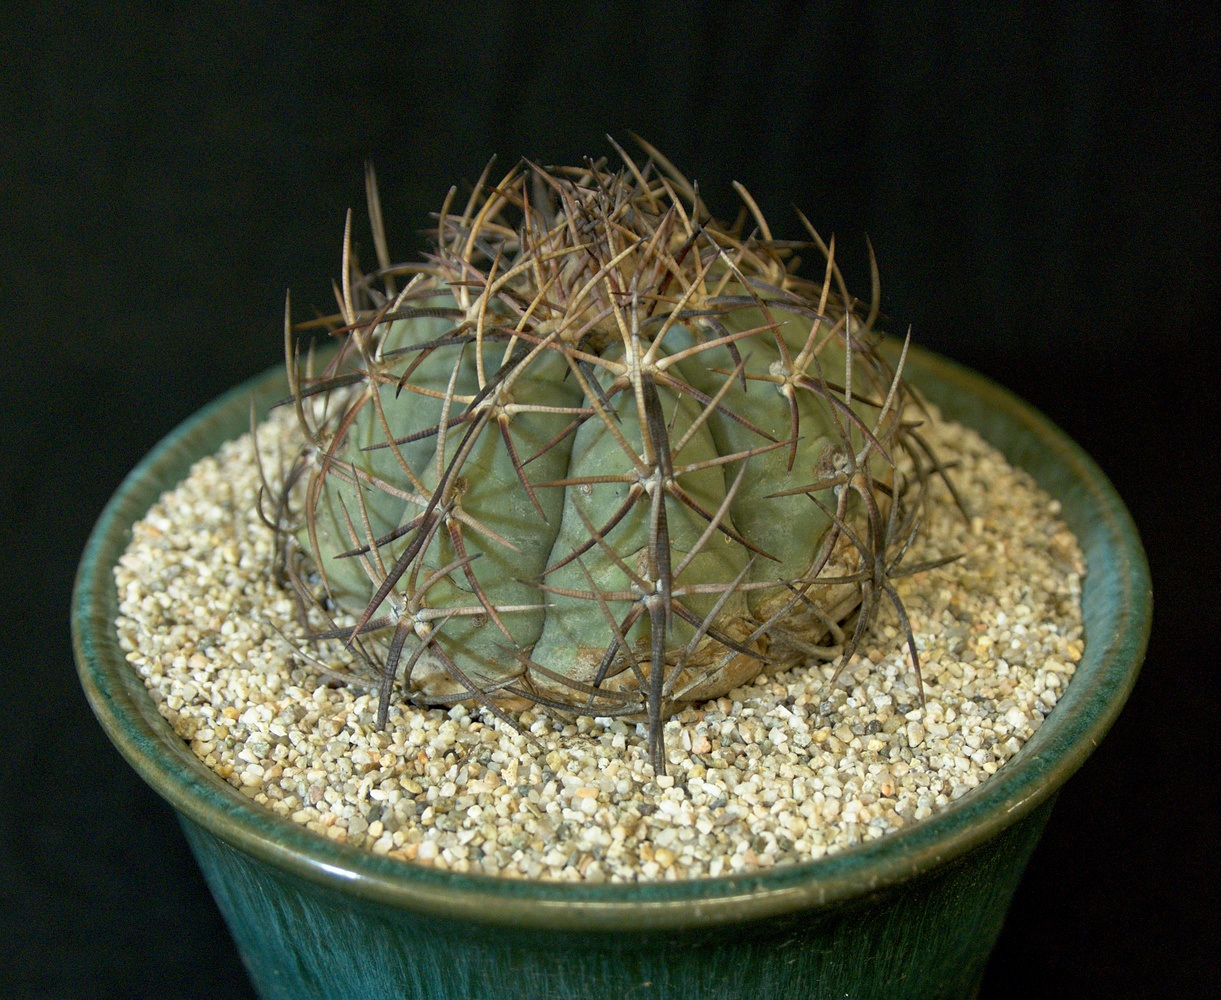 SCCSS 2017 March - Winner Open Cactus - Gary Duke - Echinocactus horizonthalonius